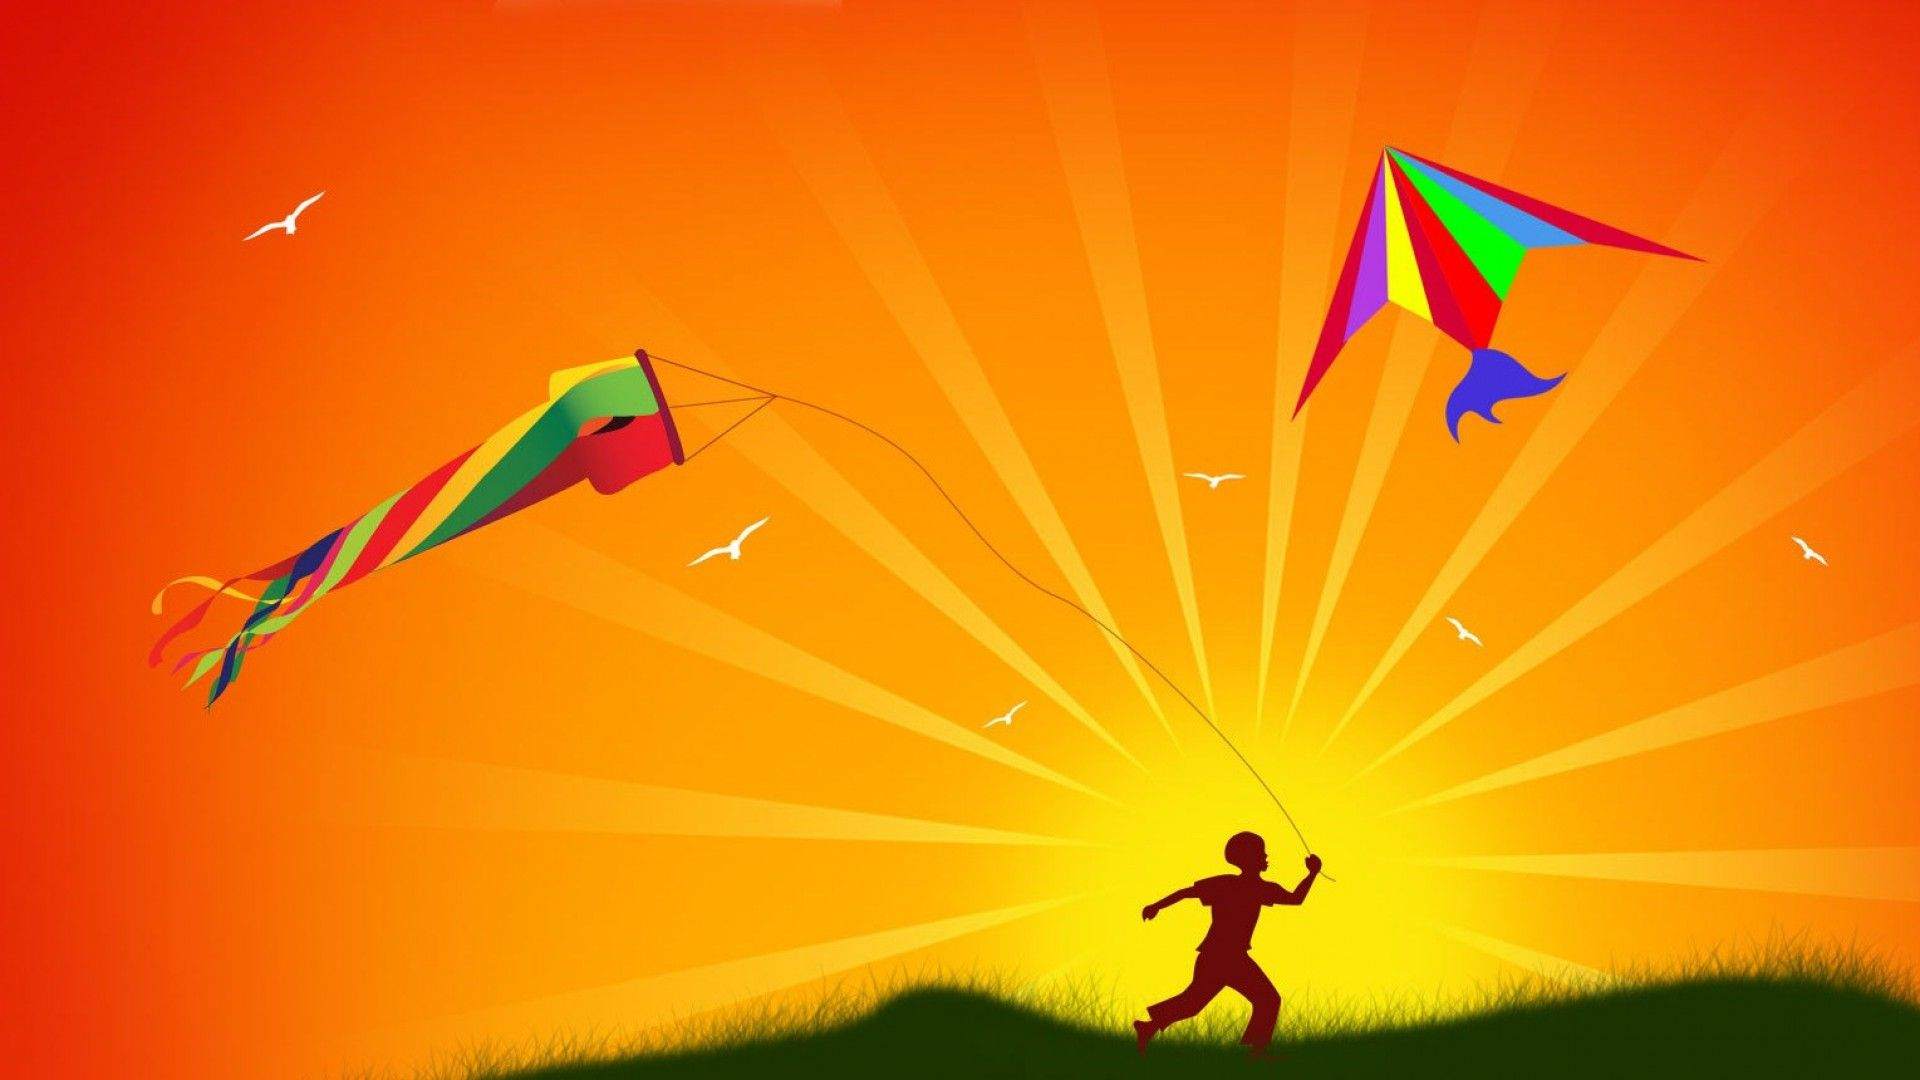 Kite Flying wallpaper with HD Quality kiteFlying kiteHD kite 1920x1080